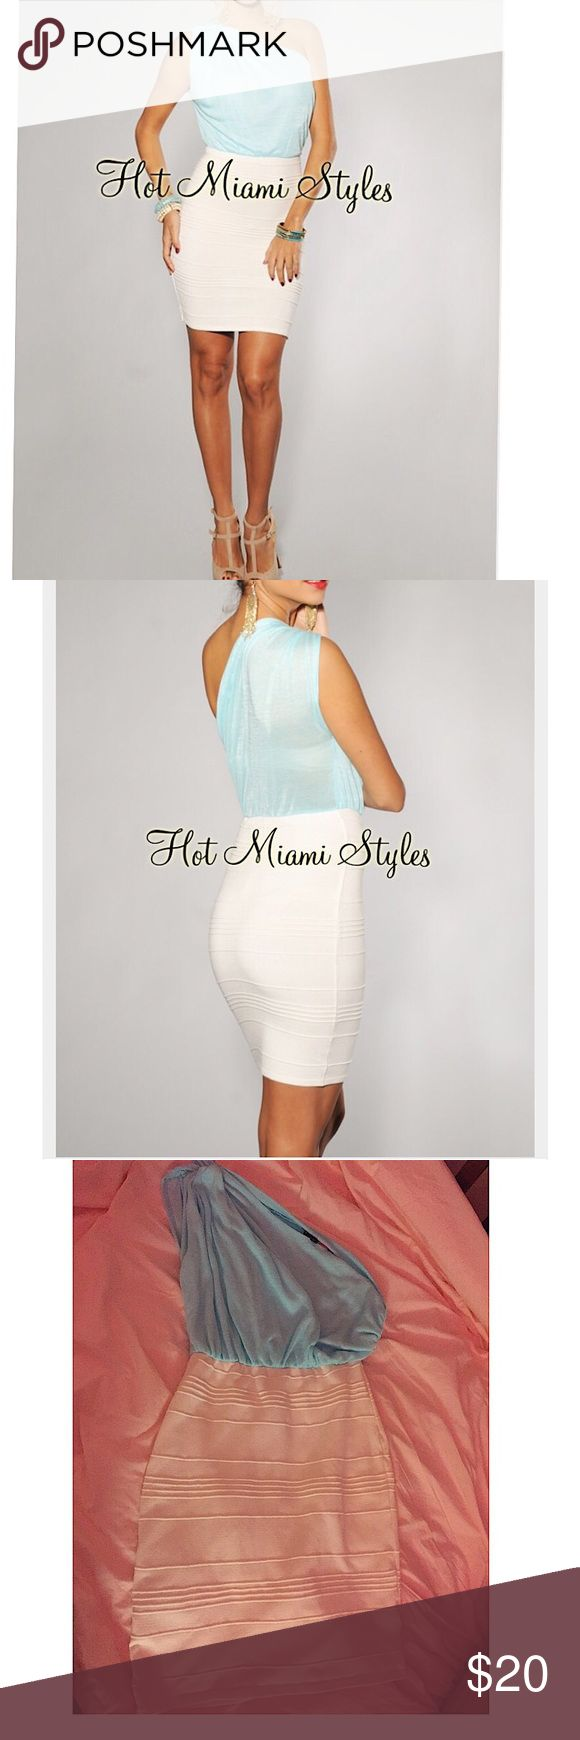 Hot Miami Style size L blue/ivory bandage dress Hot Miami Style size L blue/ivory single shoulder bandage dress. Worn 2x and hand washed. Beautiful colors. Great vacation wear or brunch. Petfree/ smoke free home. Hot Miami Styles Dresses Mini